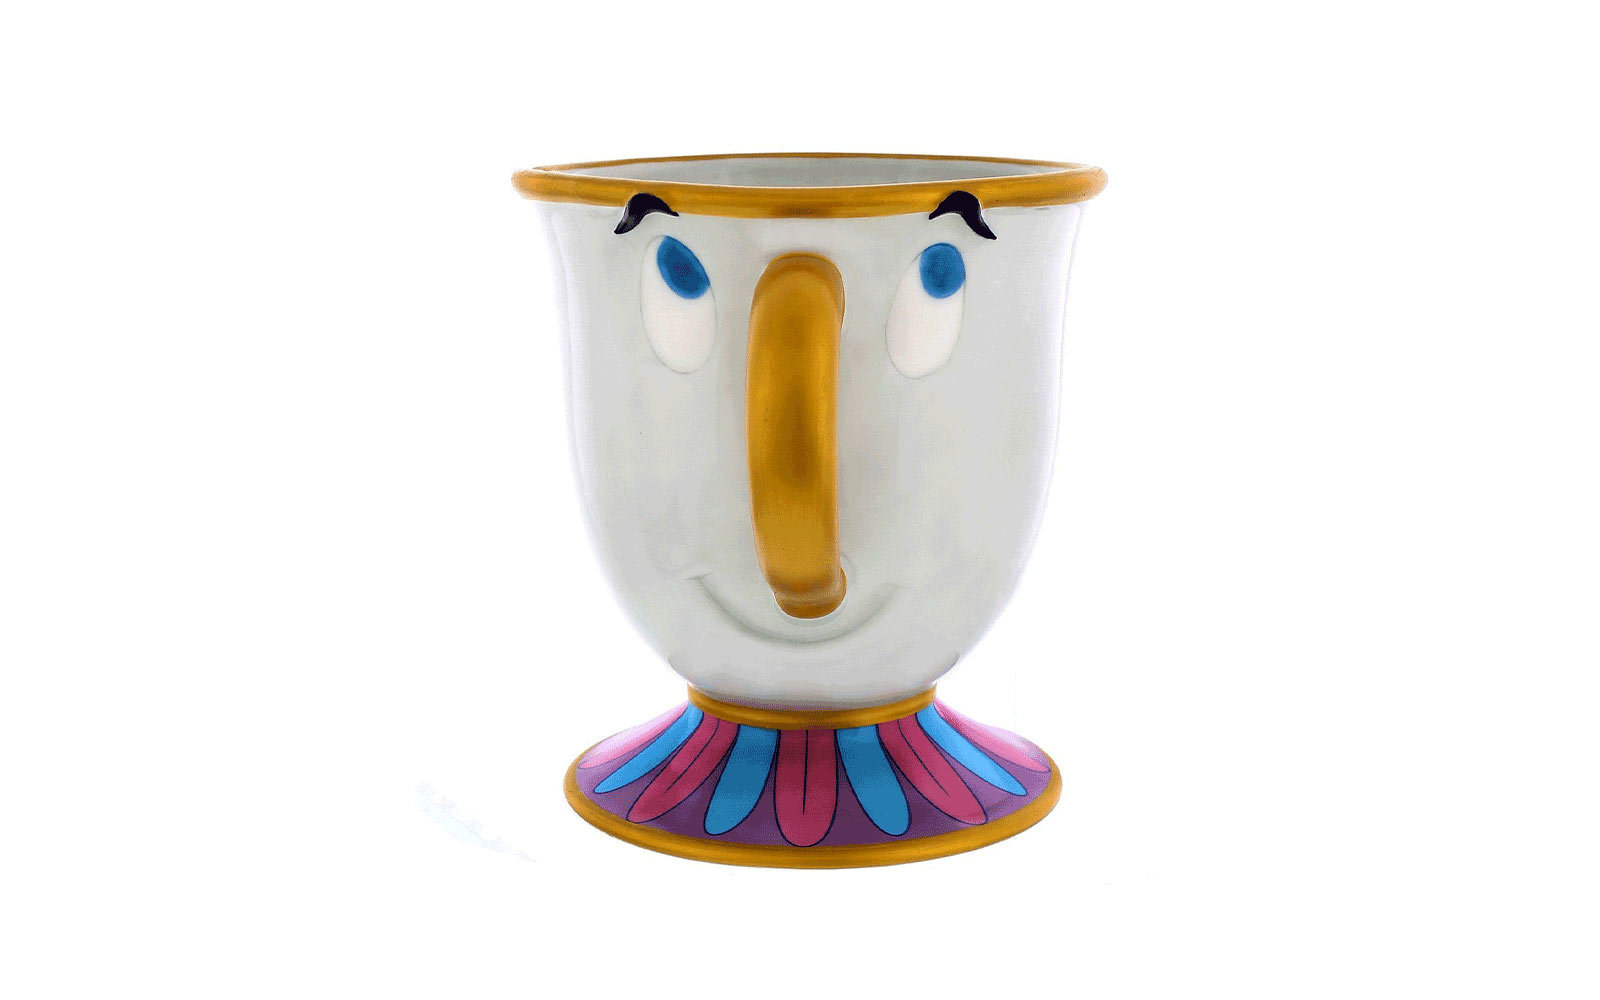 Disney Chip cup